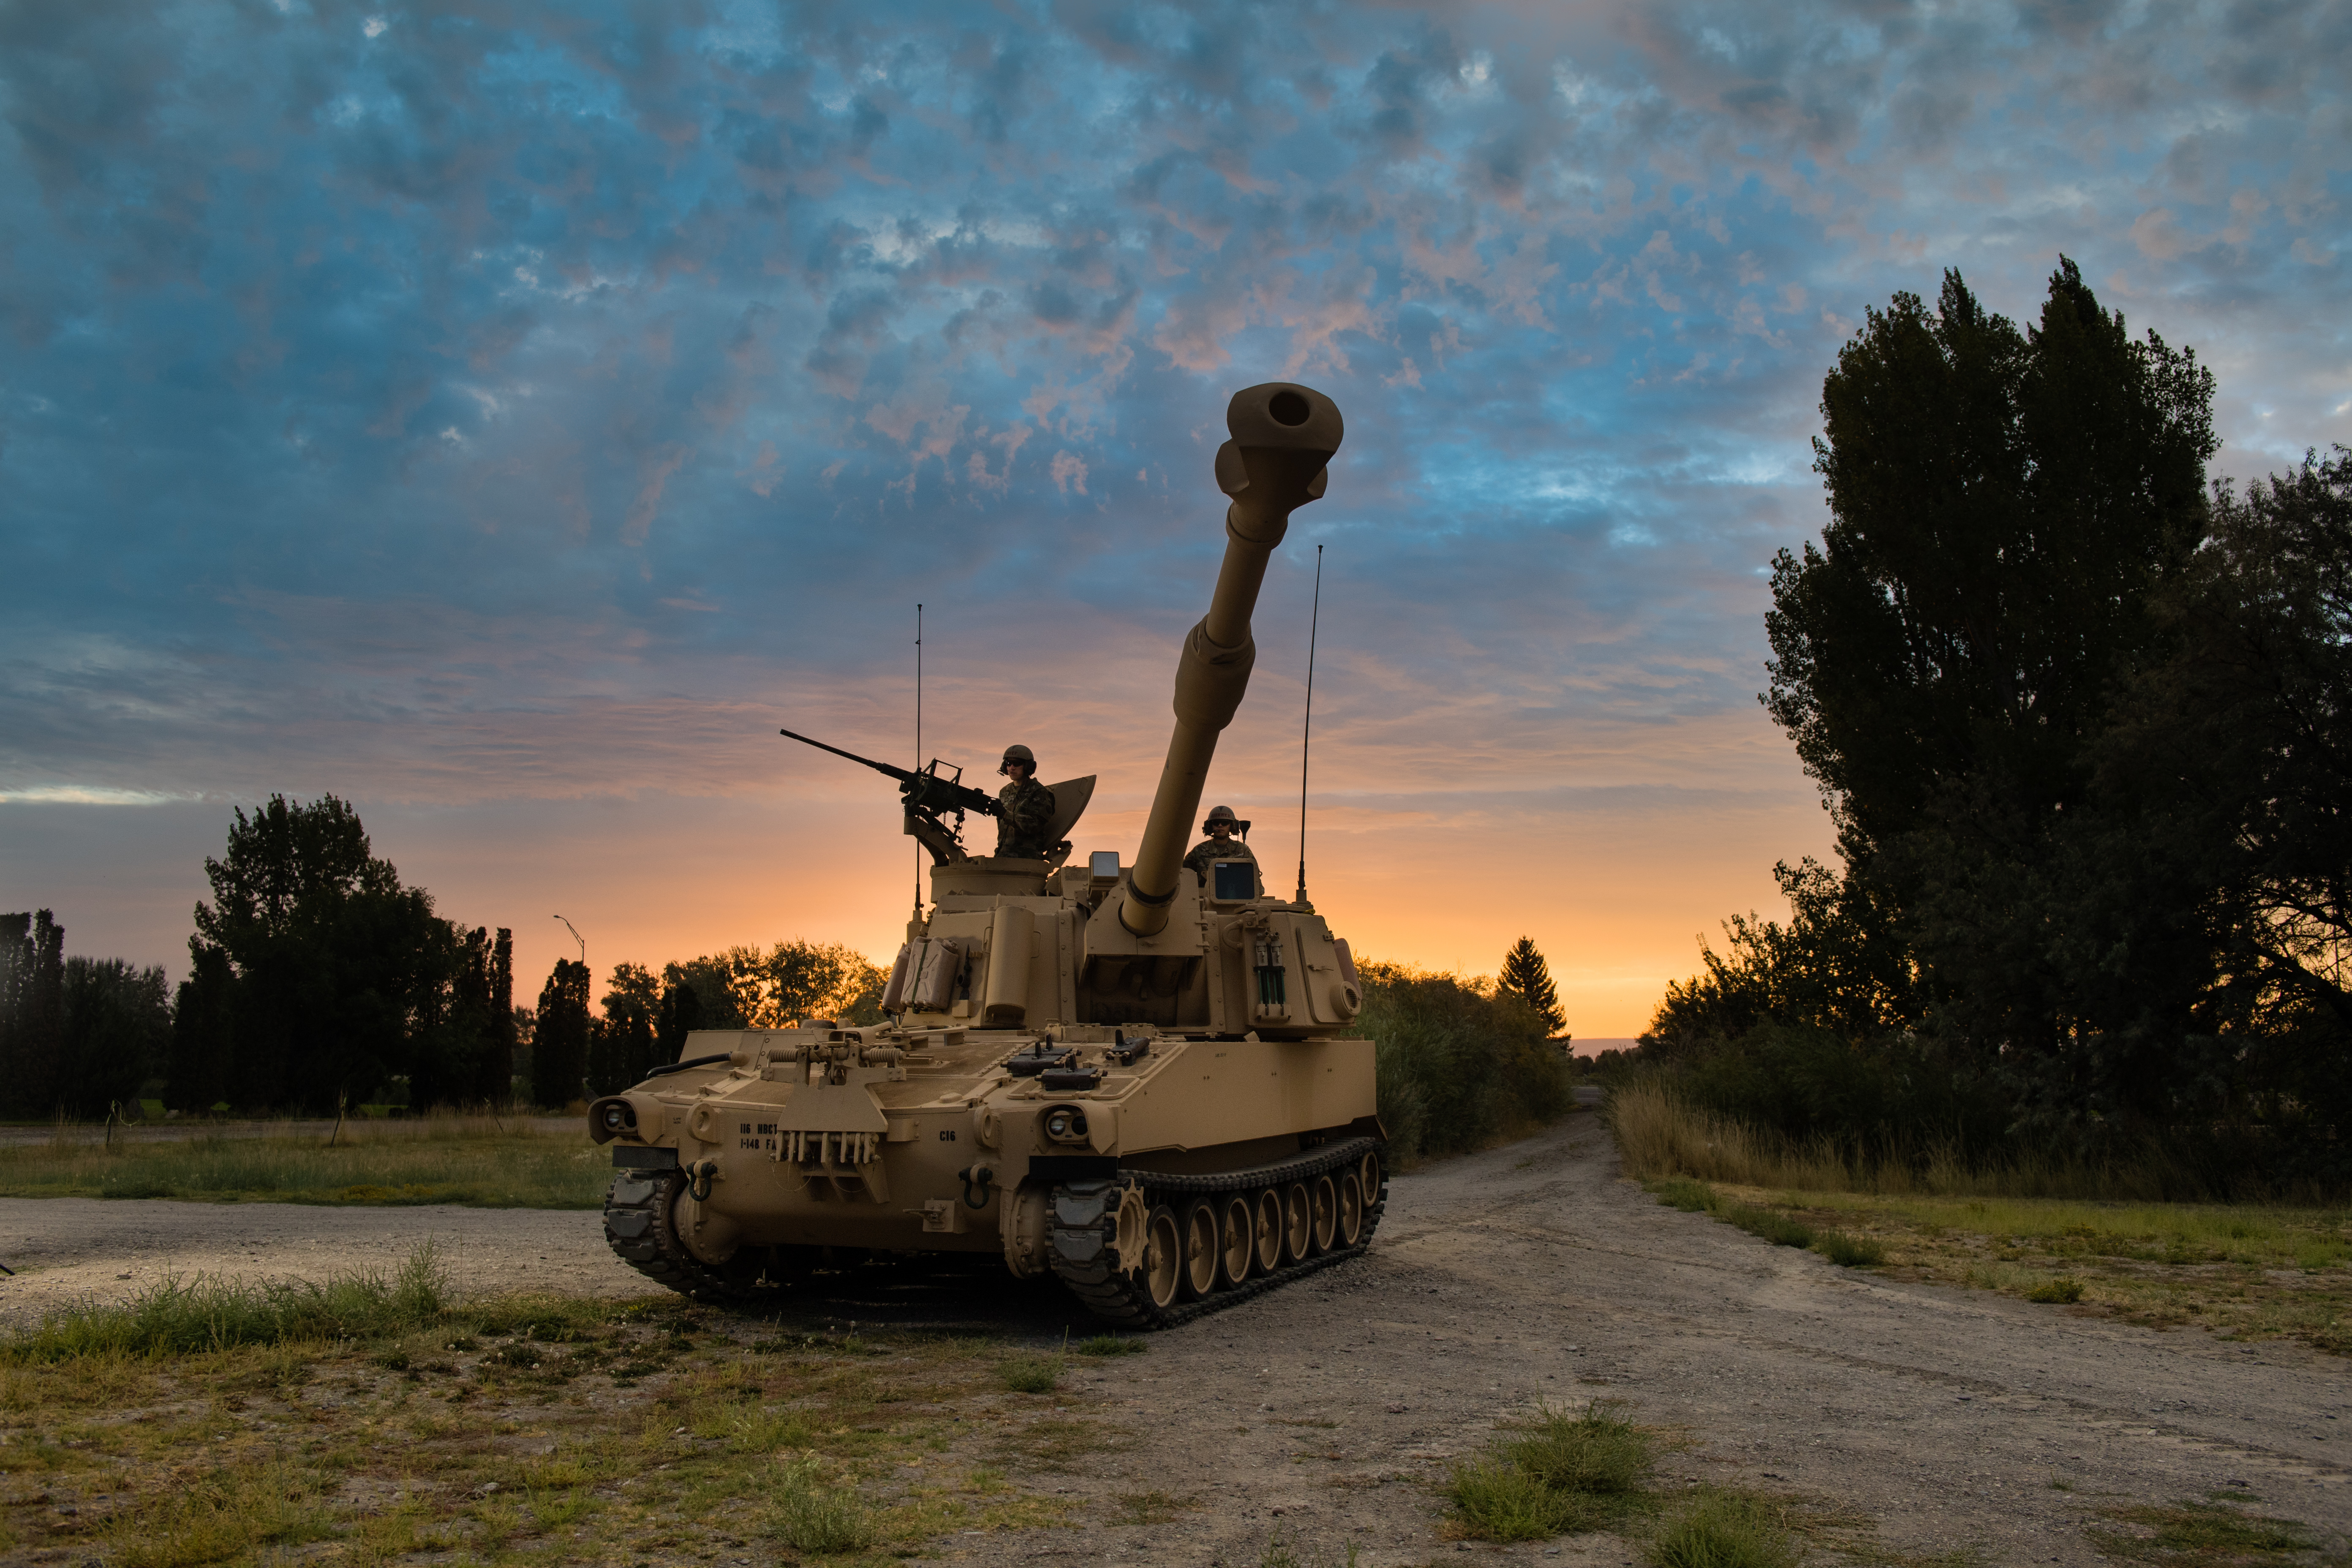 The M109A6 Paladin 155mm self-propelled howitzer along with the M992A2 Field Artillery Ammunition Supply Vehicle provides the primary indirect-fire support to armored brigade combat teams. (U.S. Army)